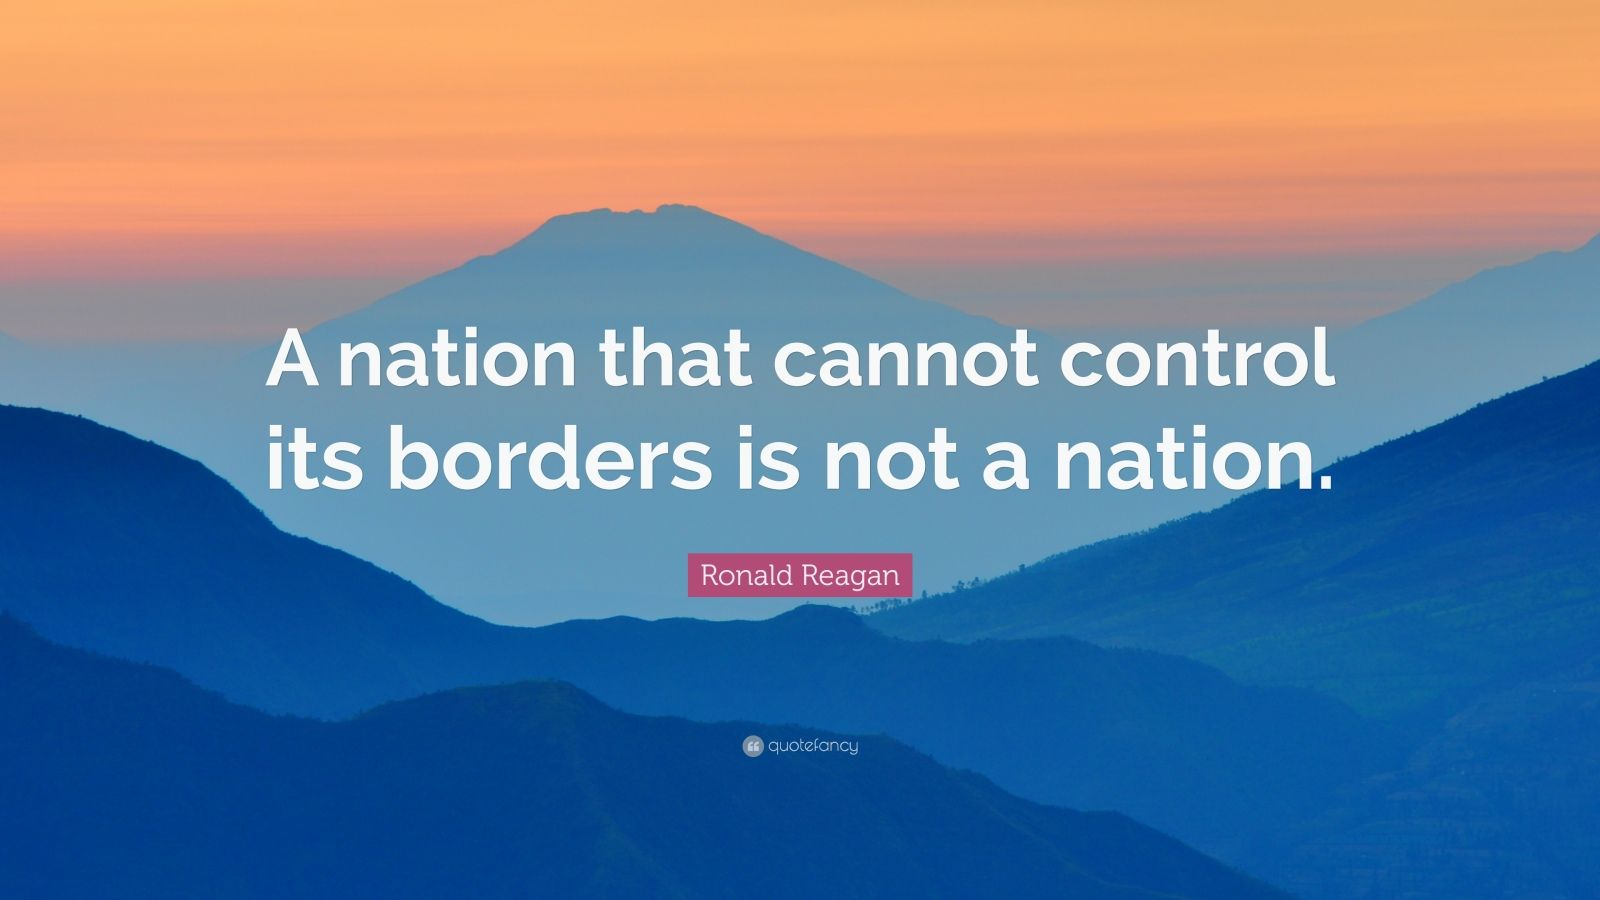 """Ronald Reagan Quote: """"A nation that cannot control its borders is not a nation."""""""